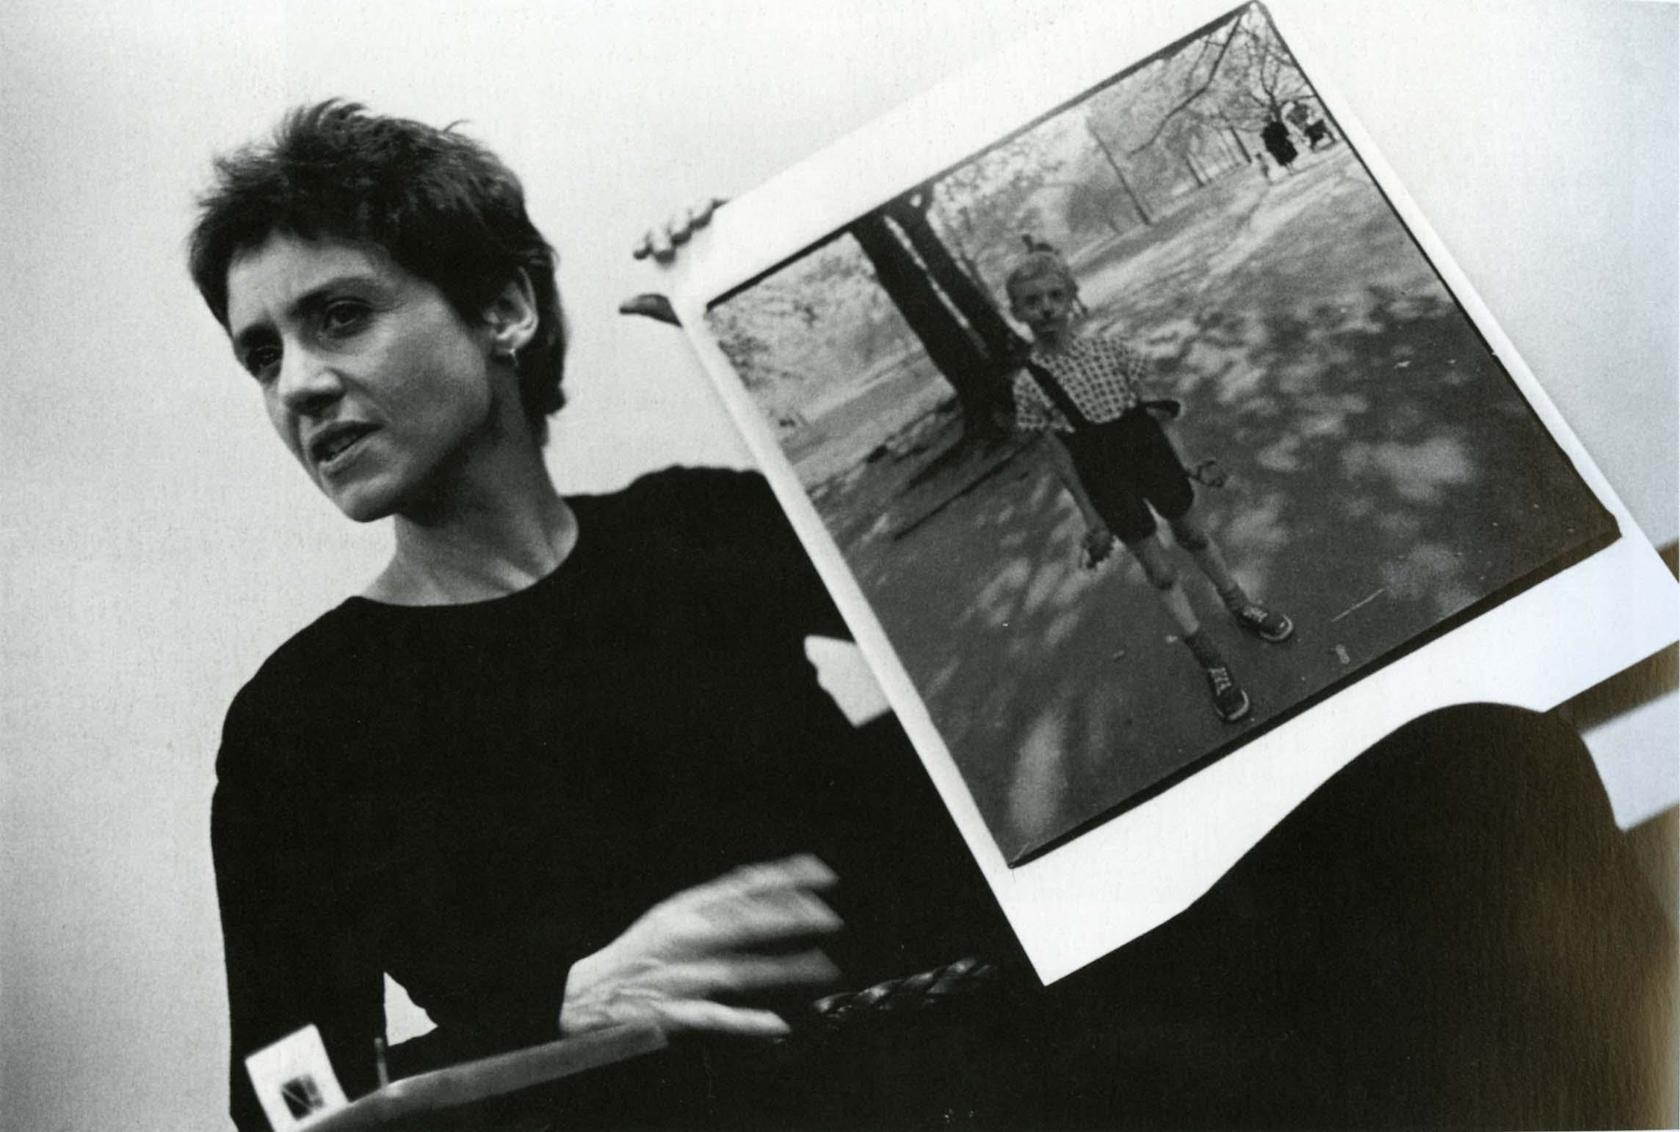 diane_arbus_with_her_photo_of_a_boy_holding_a_toy_grenade_in_central_park_ny_1970_stephen_frank